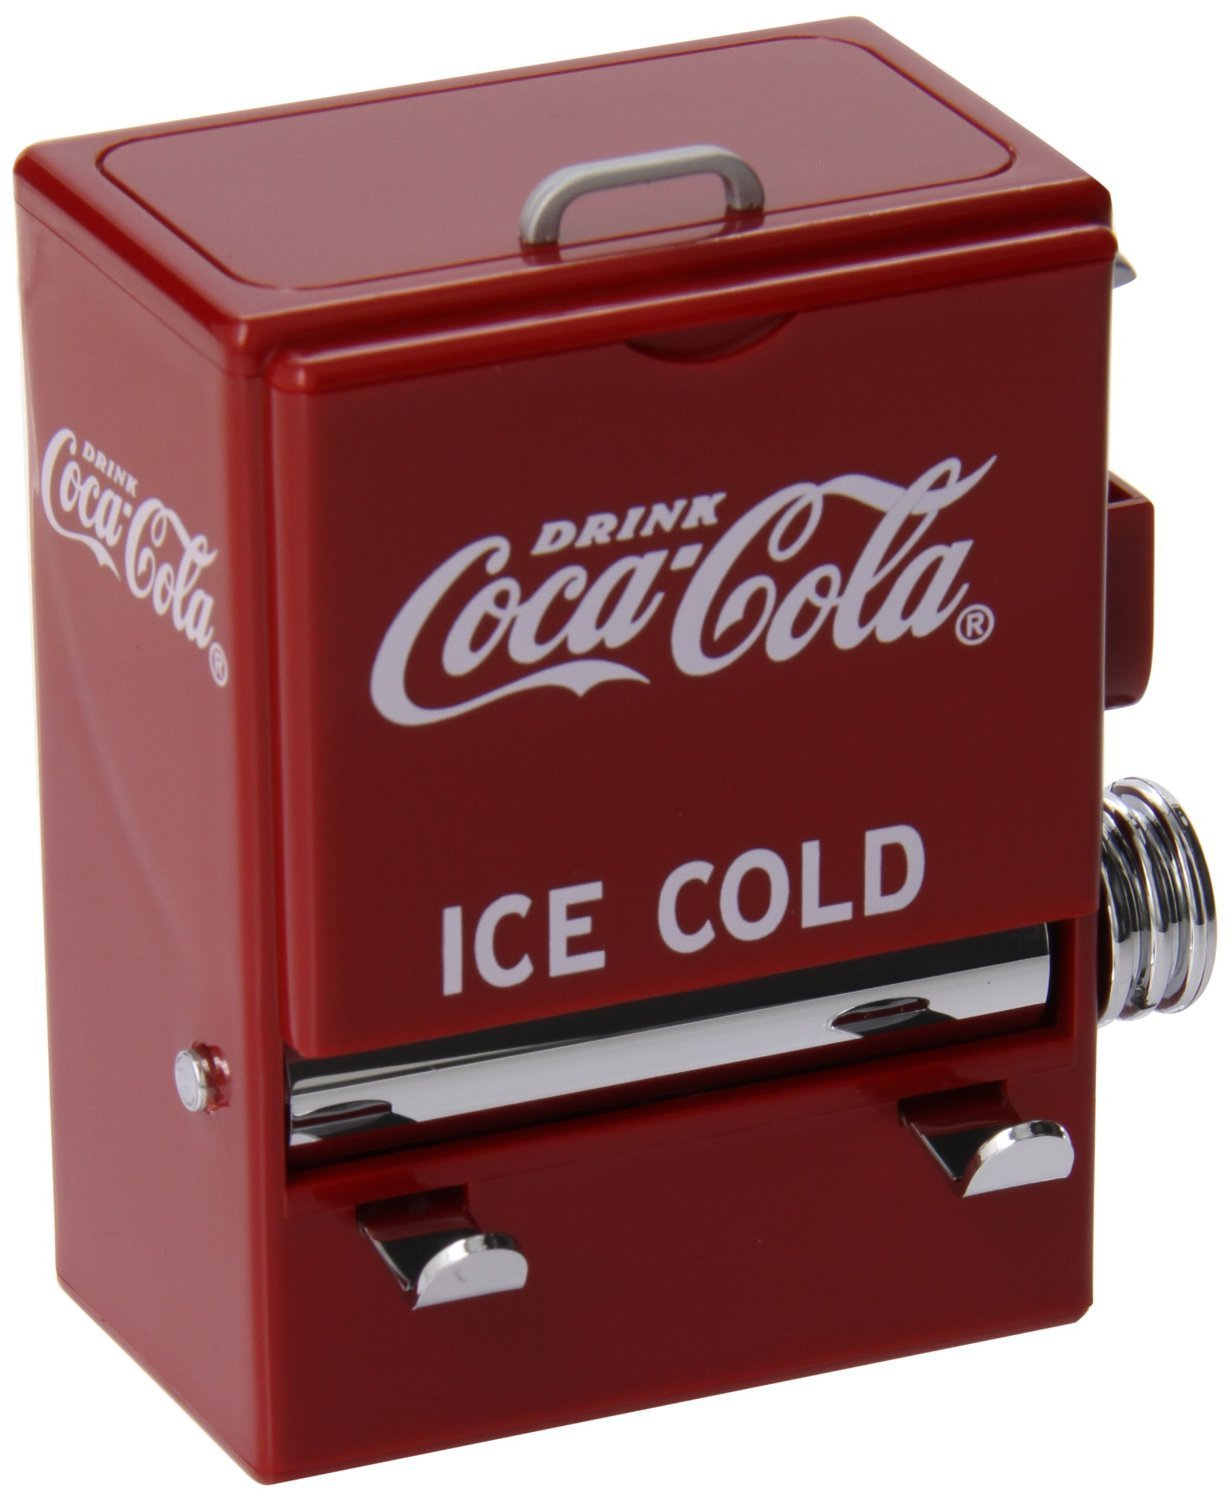 Tablecraft CC304 Coke Vending Machine Toothpick Dispenser, Set of 2 by Tablecraft